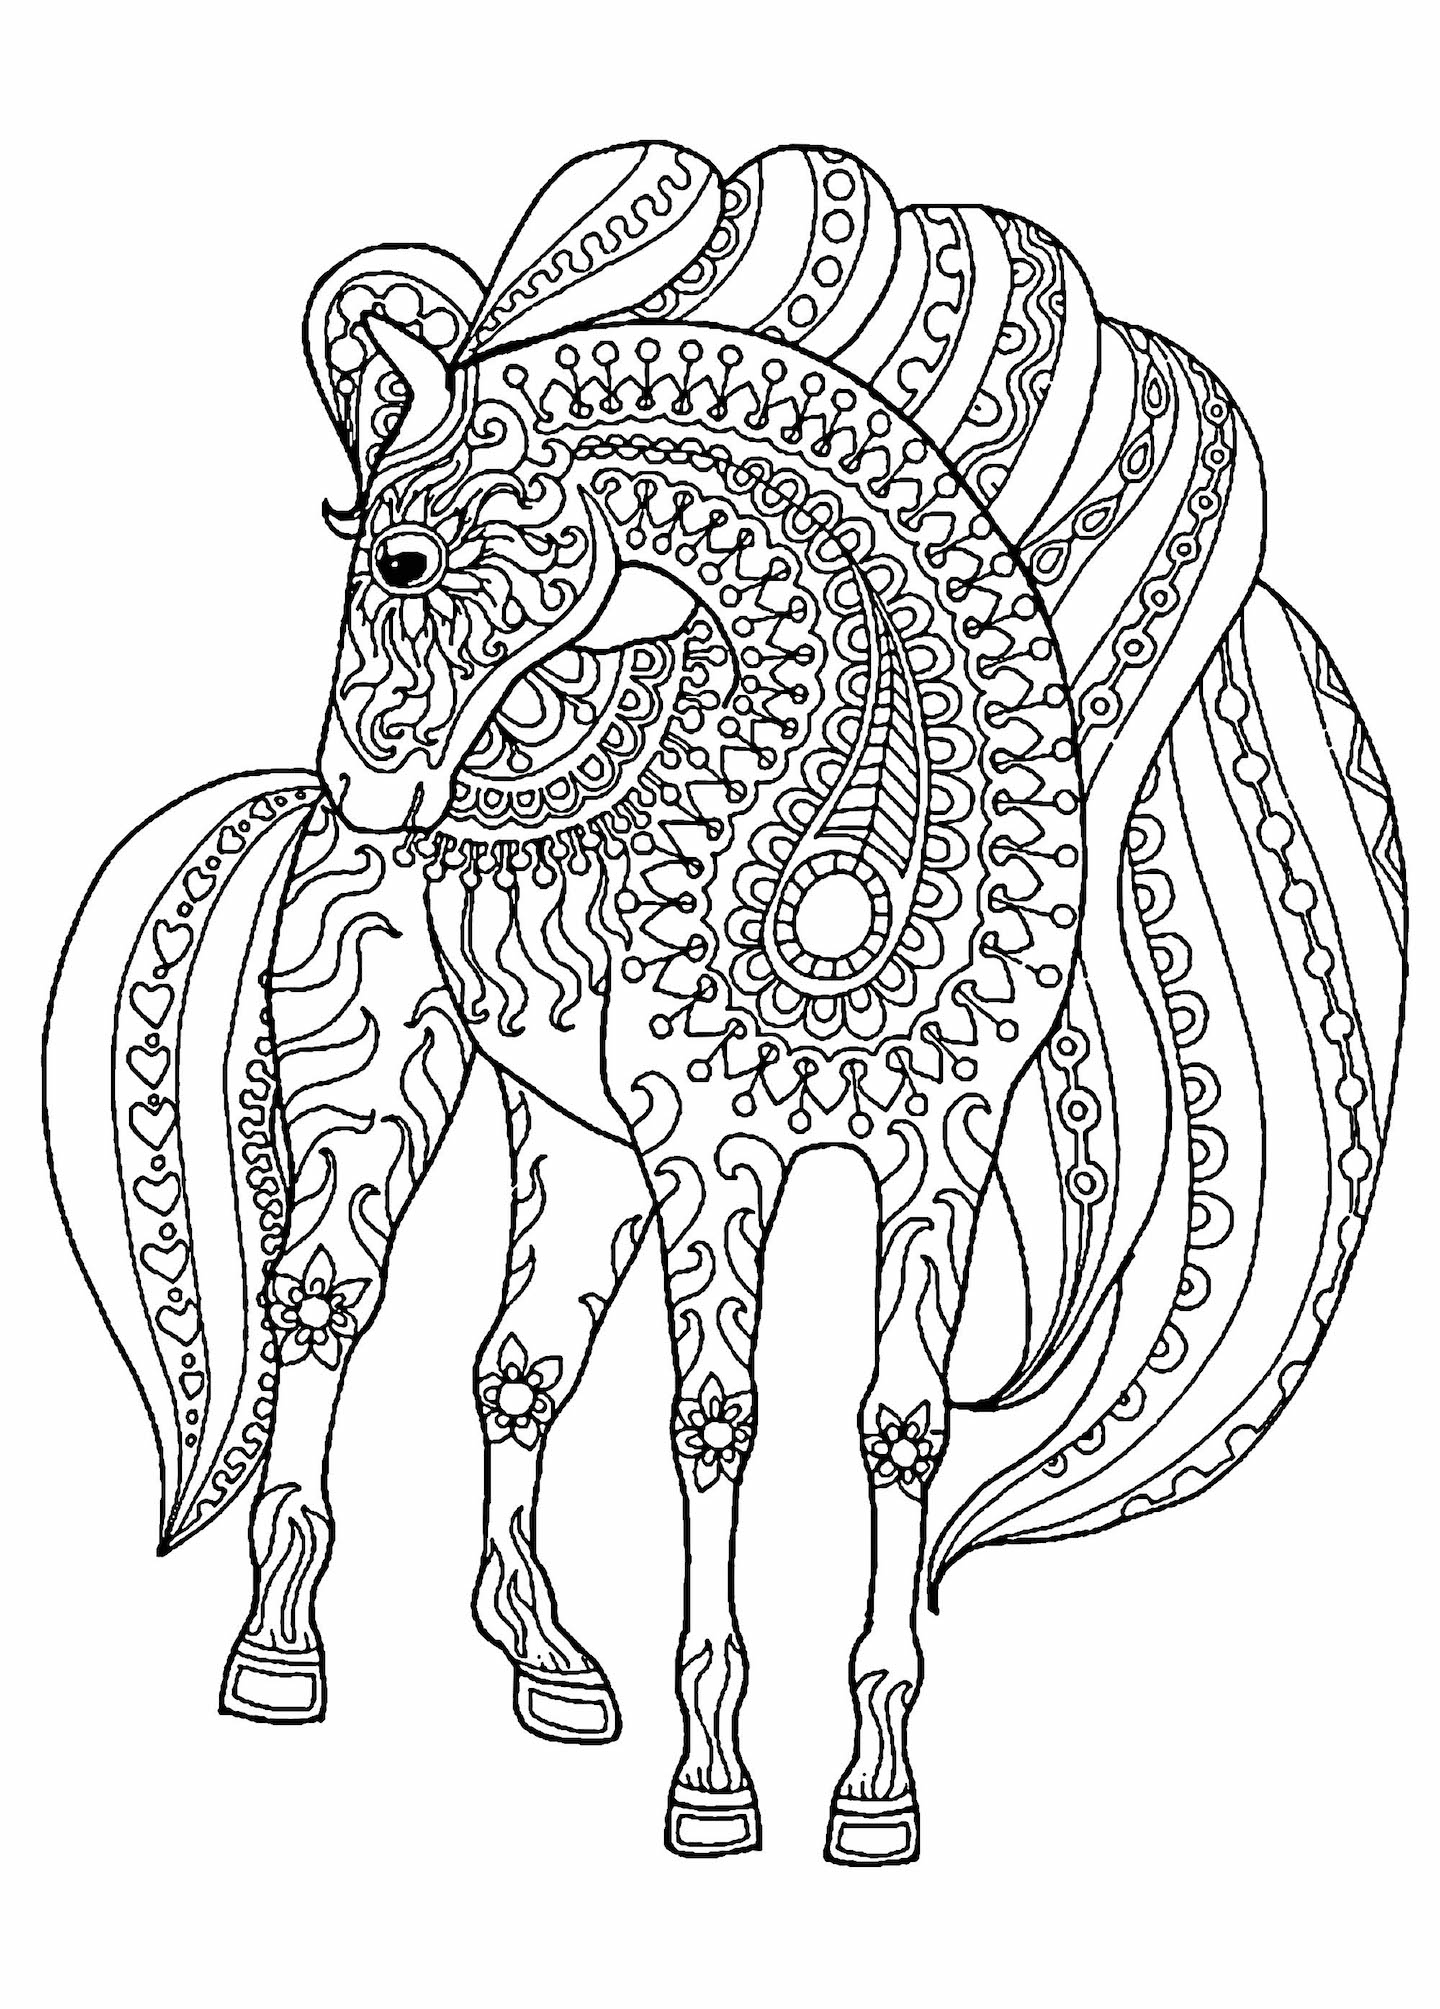 horses to color hand drawn horse for adult coloring page art therapy stock color horses to